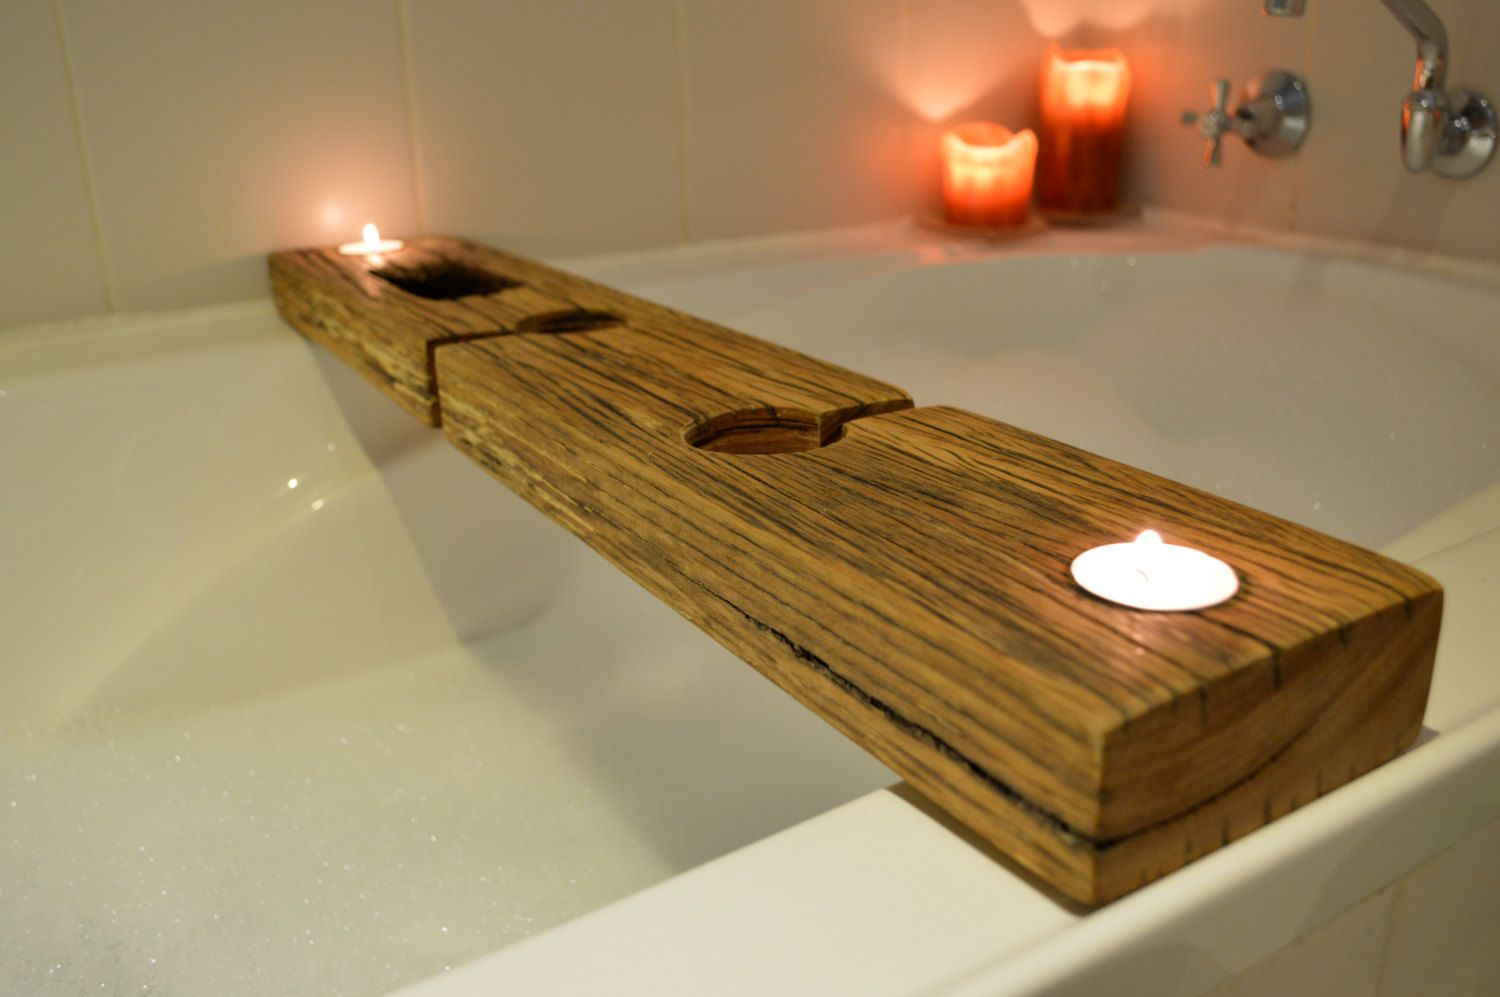 Bathtub Tray for Your Bathroom Accessories: Bathtub Tray | Wooden ...